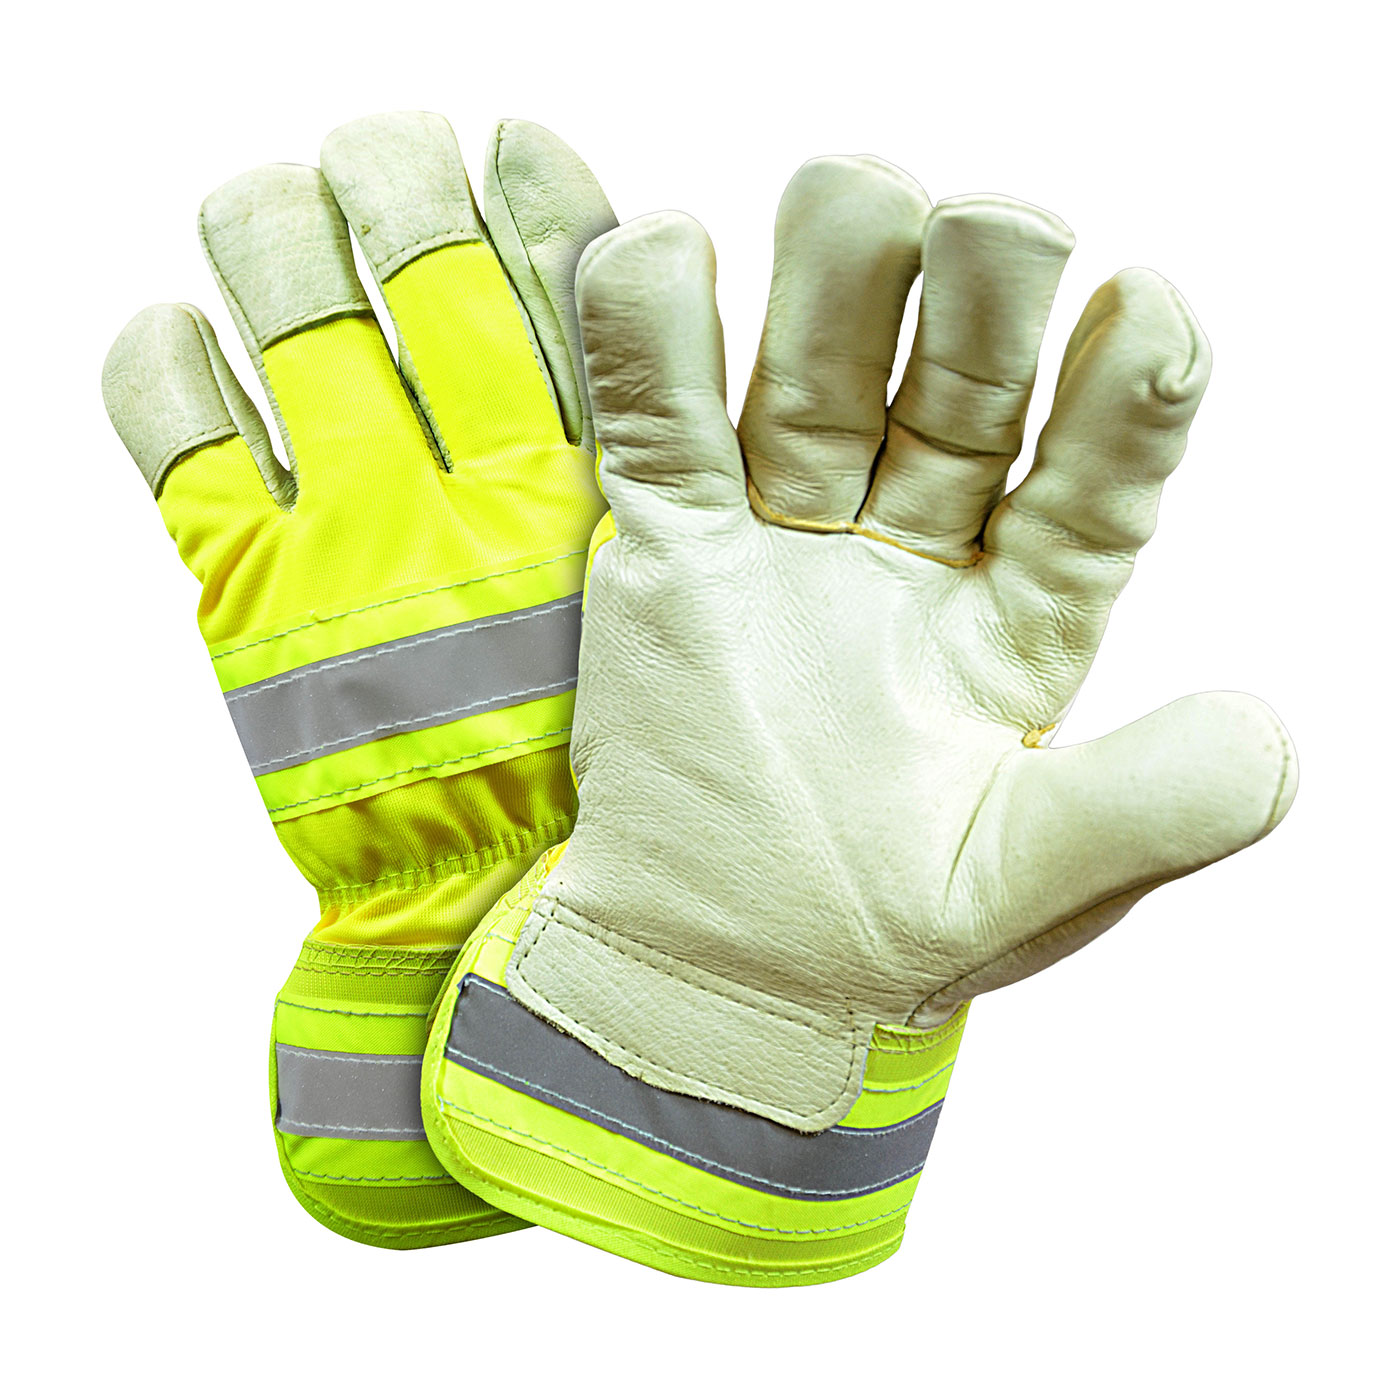 #HVY5555 PIP® West Chester Posi-Therm Top Grain Pigskin Leather Palm Glove with Rubberized Safety Cuffs, Hi-Vis Nylon Backs and Retro Reflective Stripes